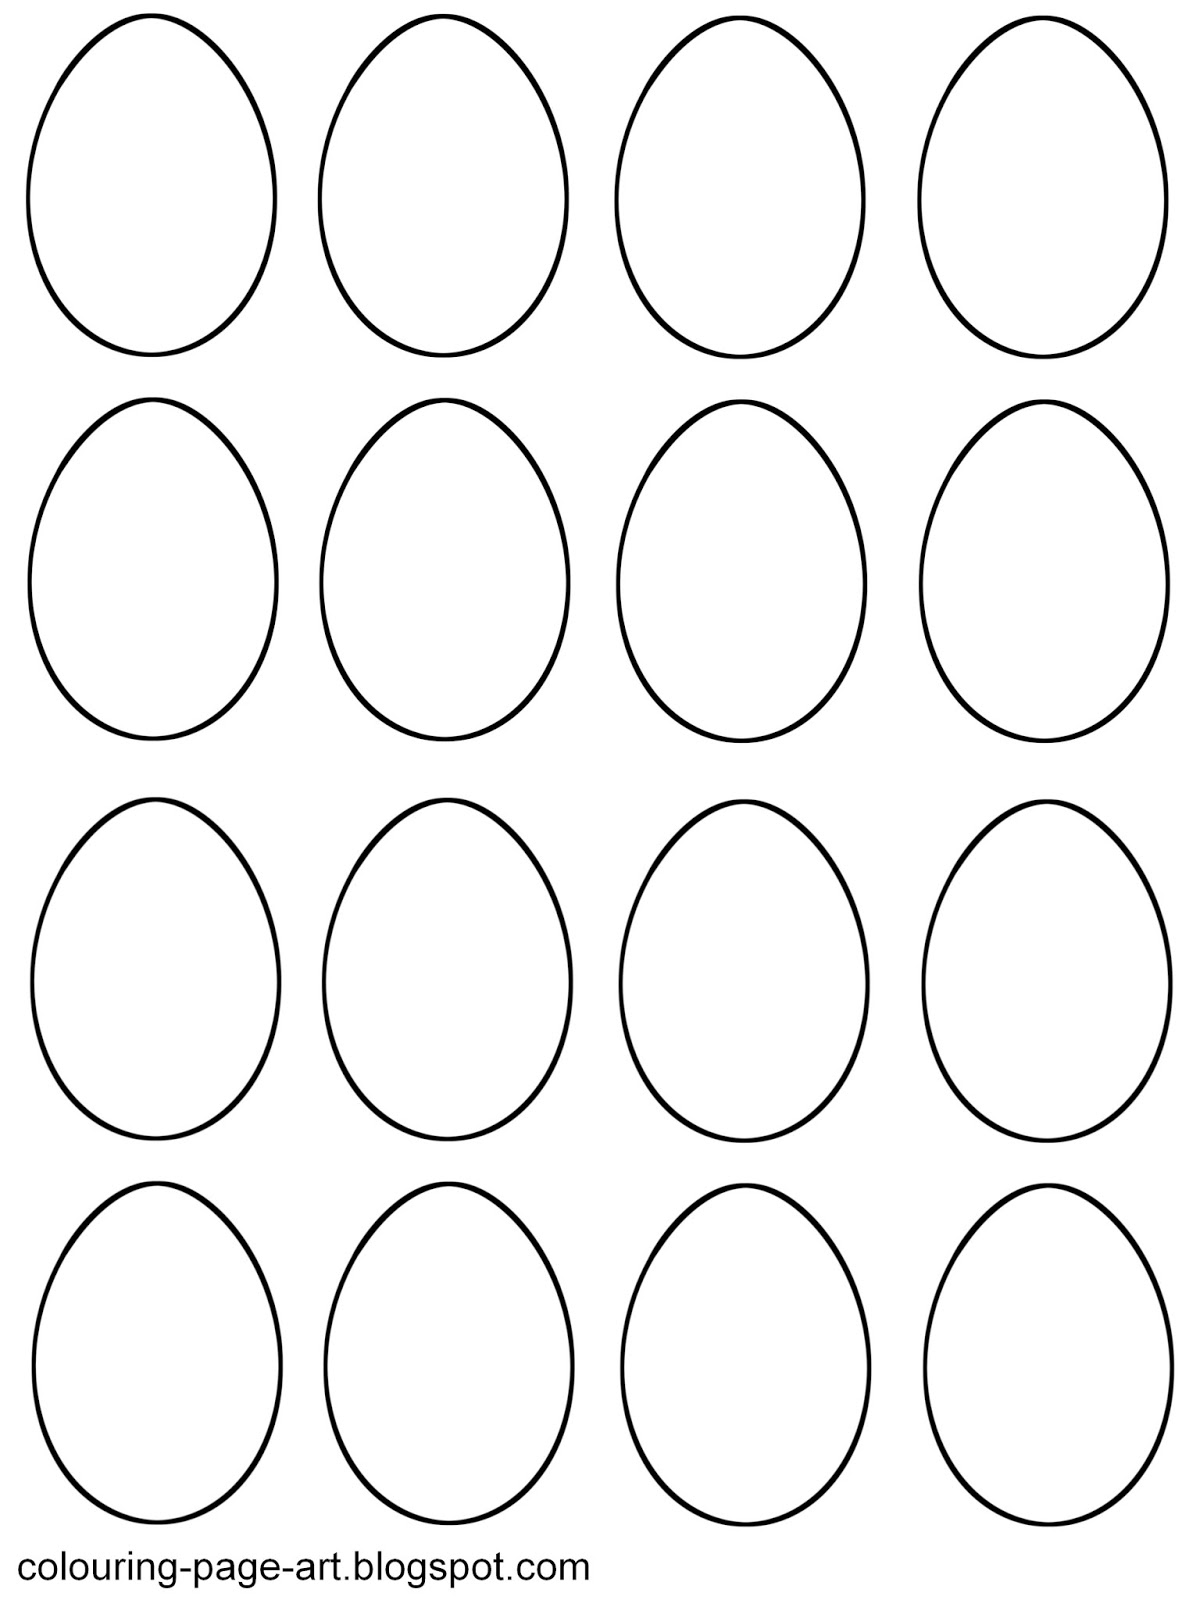 Blank easter egg templates colouring page art blank easter egg templates pronofoot35fo Images